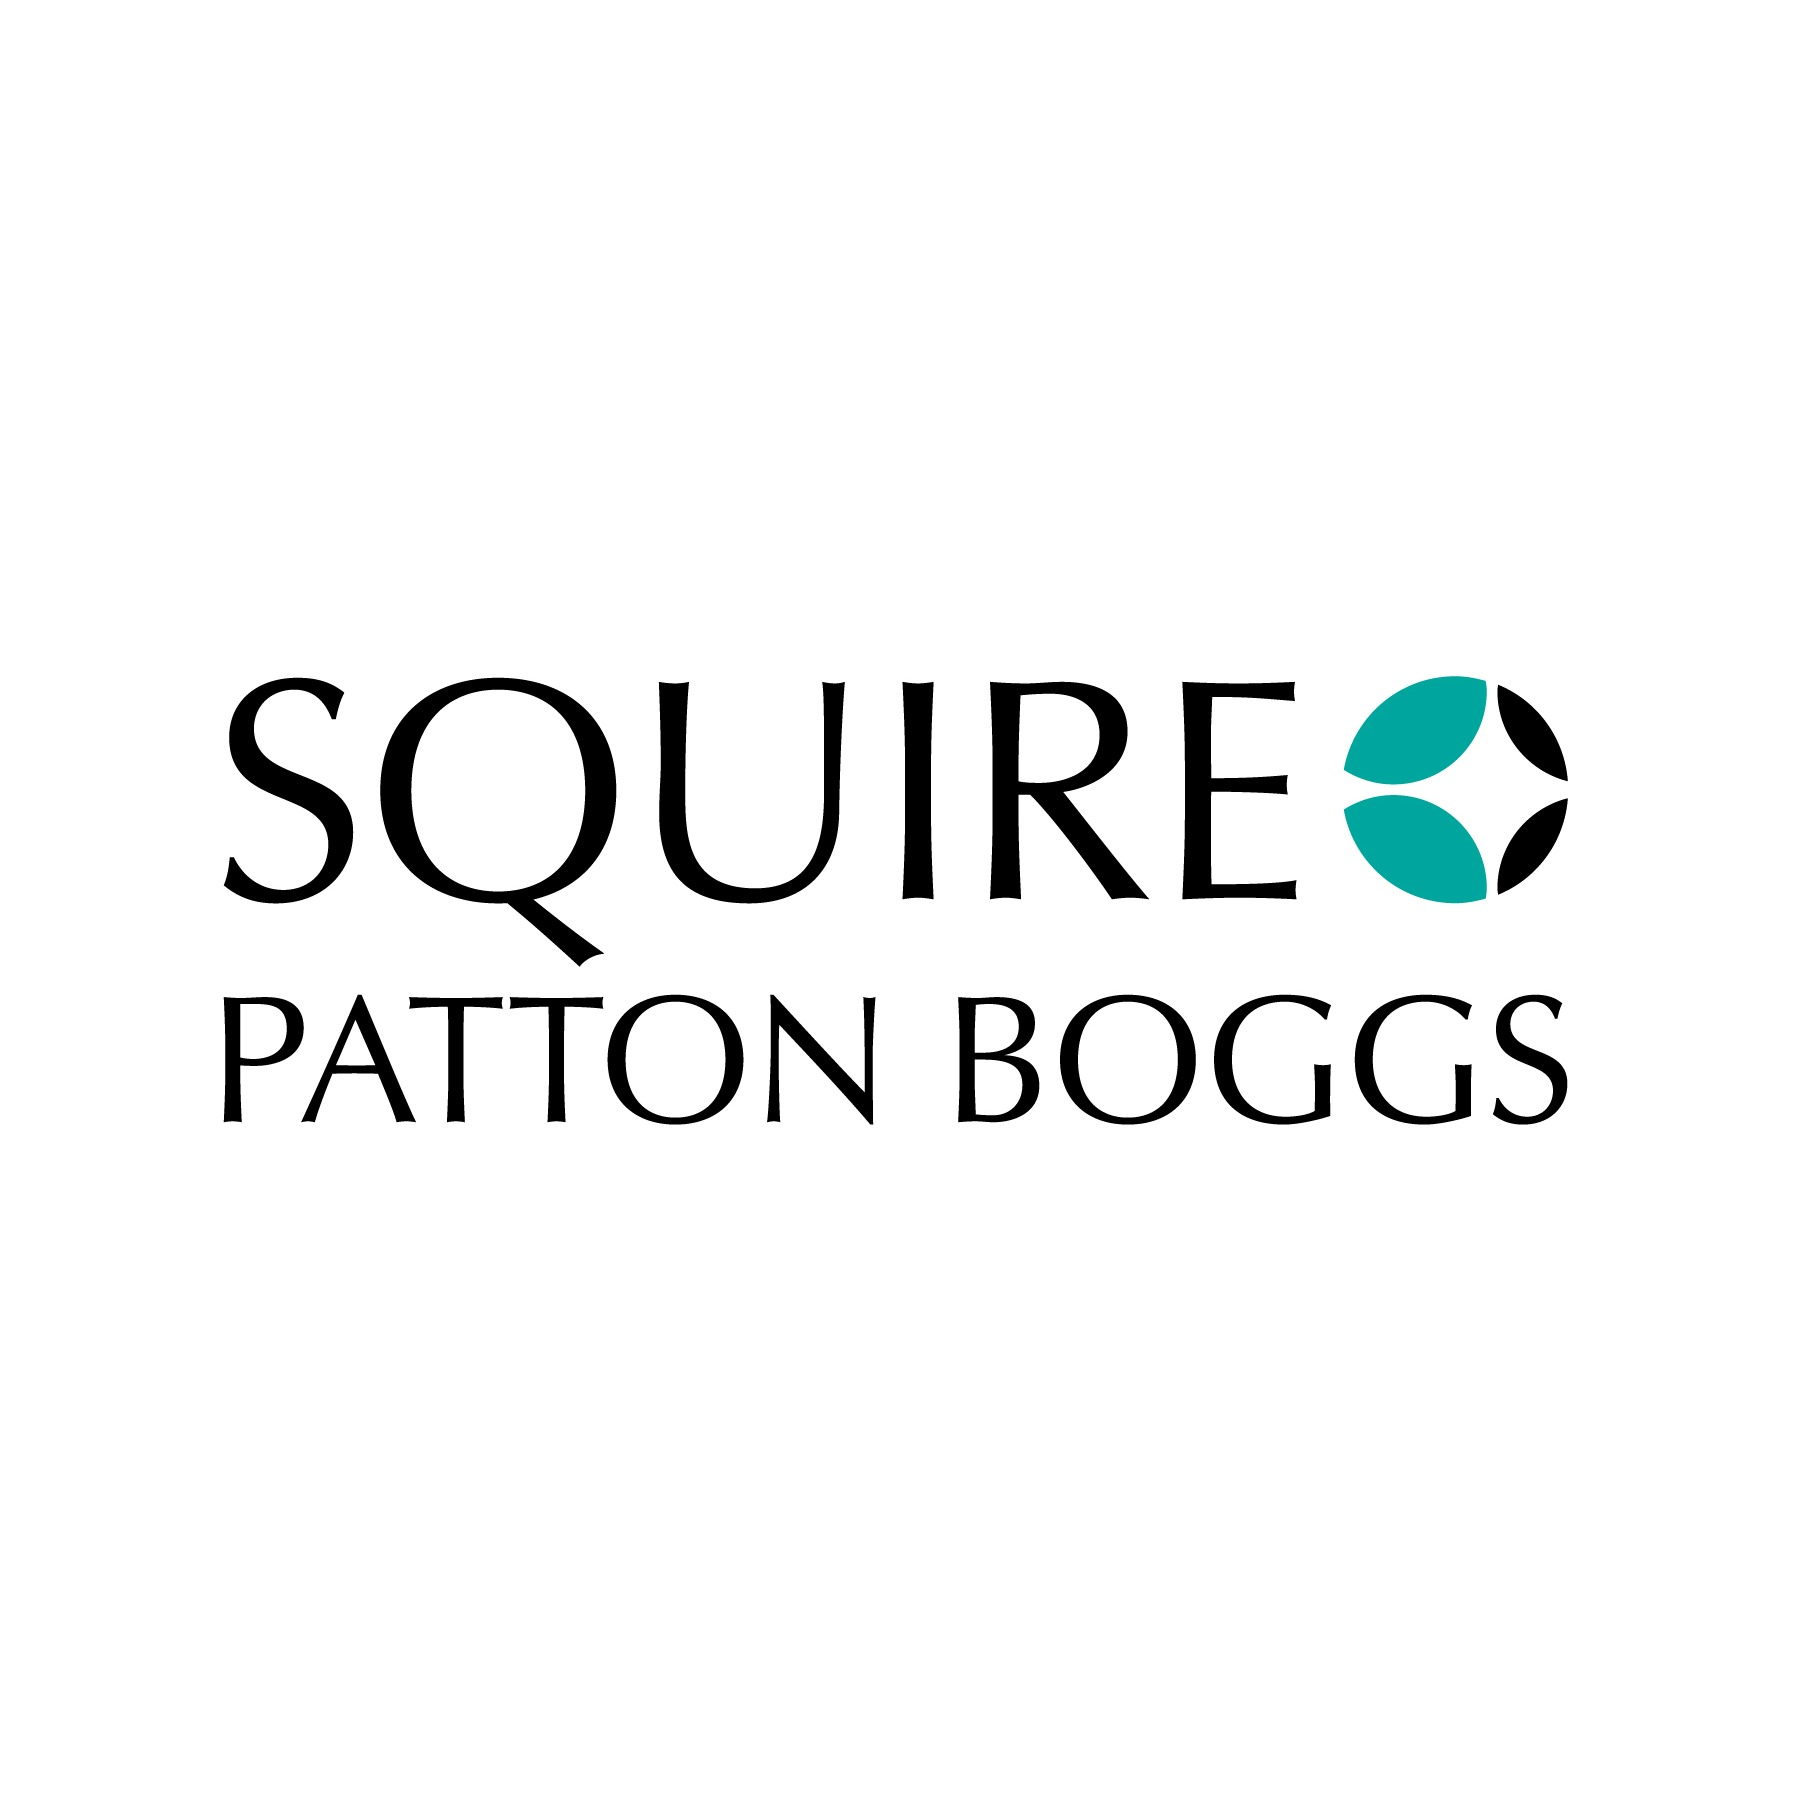 the Squire Patton Boggs logo.